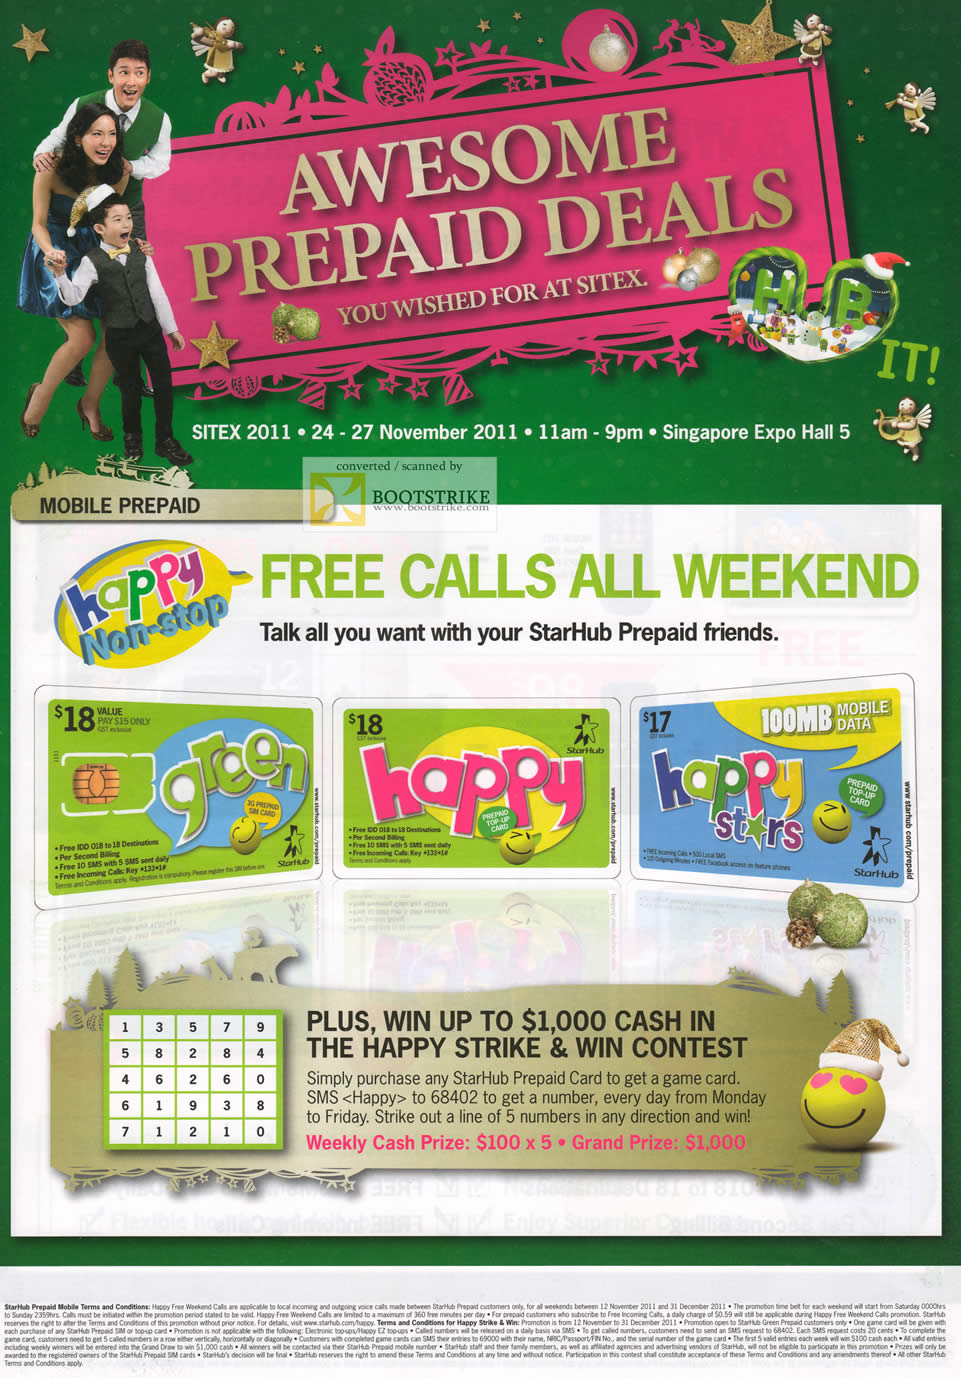 SITEX 2011 price list image brochure of Starhub Maxmobile Prepaid Free Calls All Weekend, Green, Happy, Happy Stars